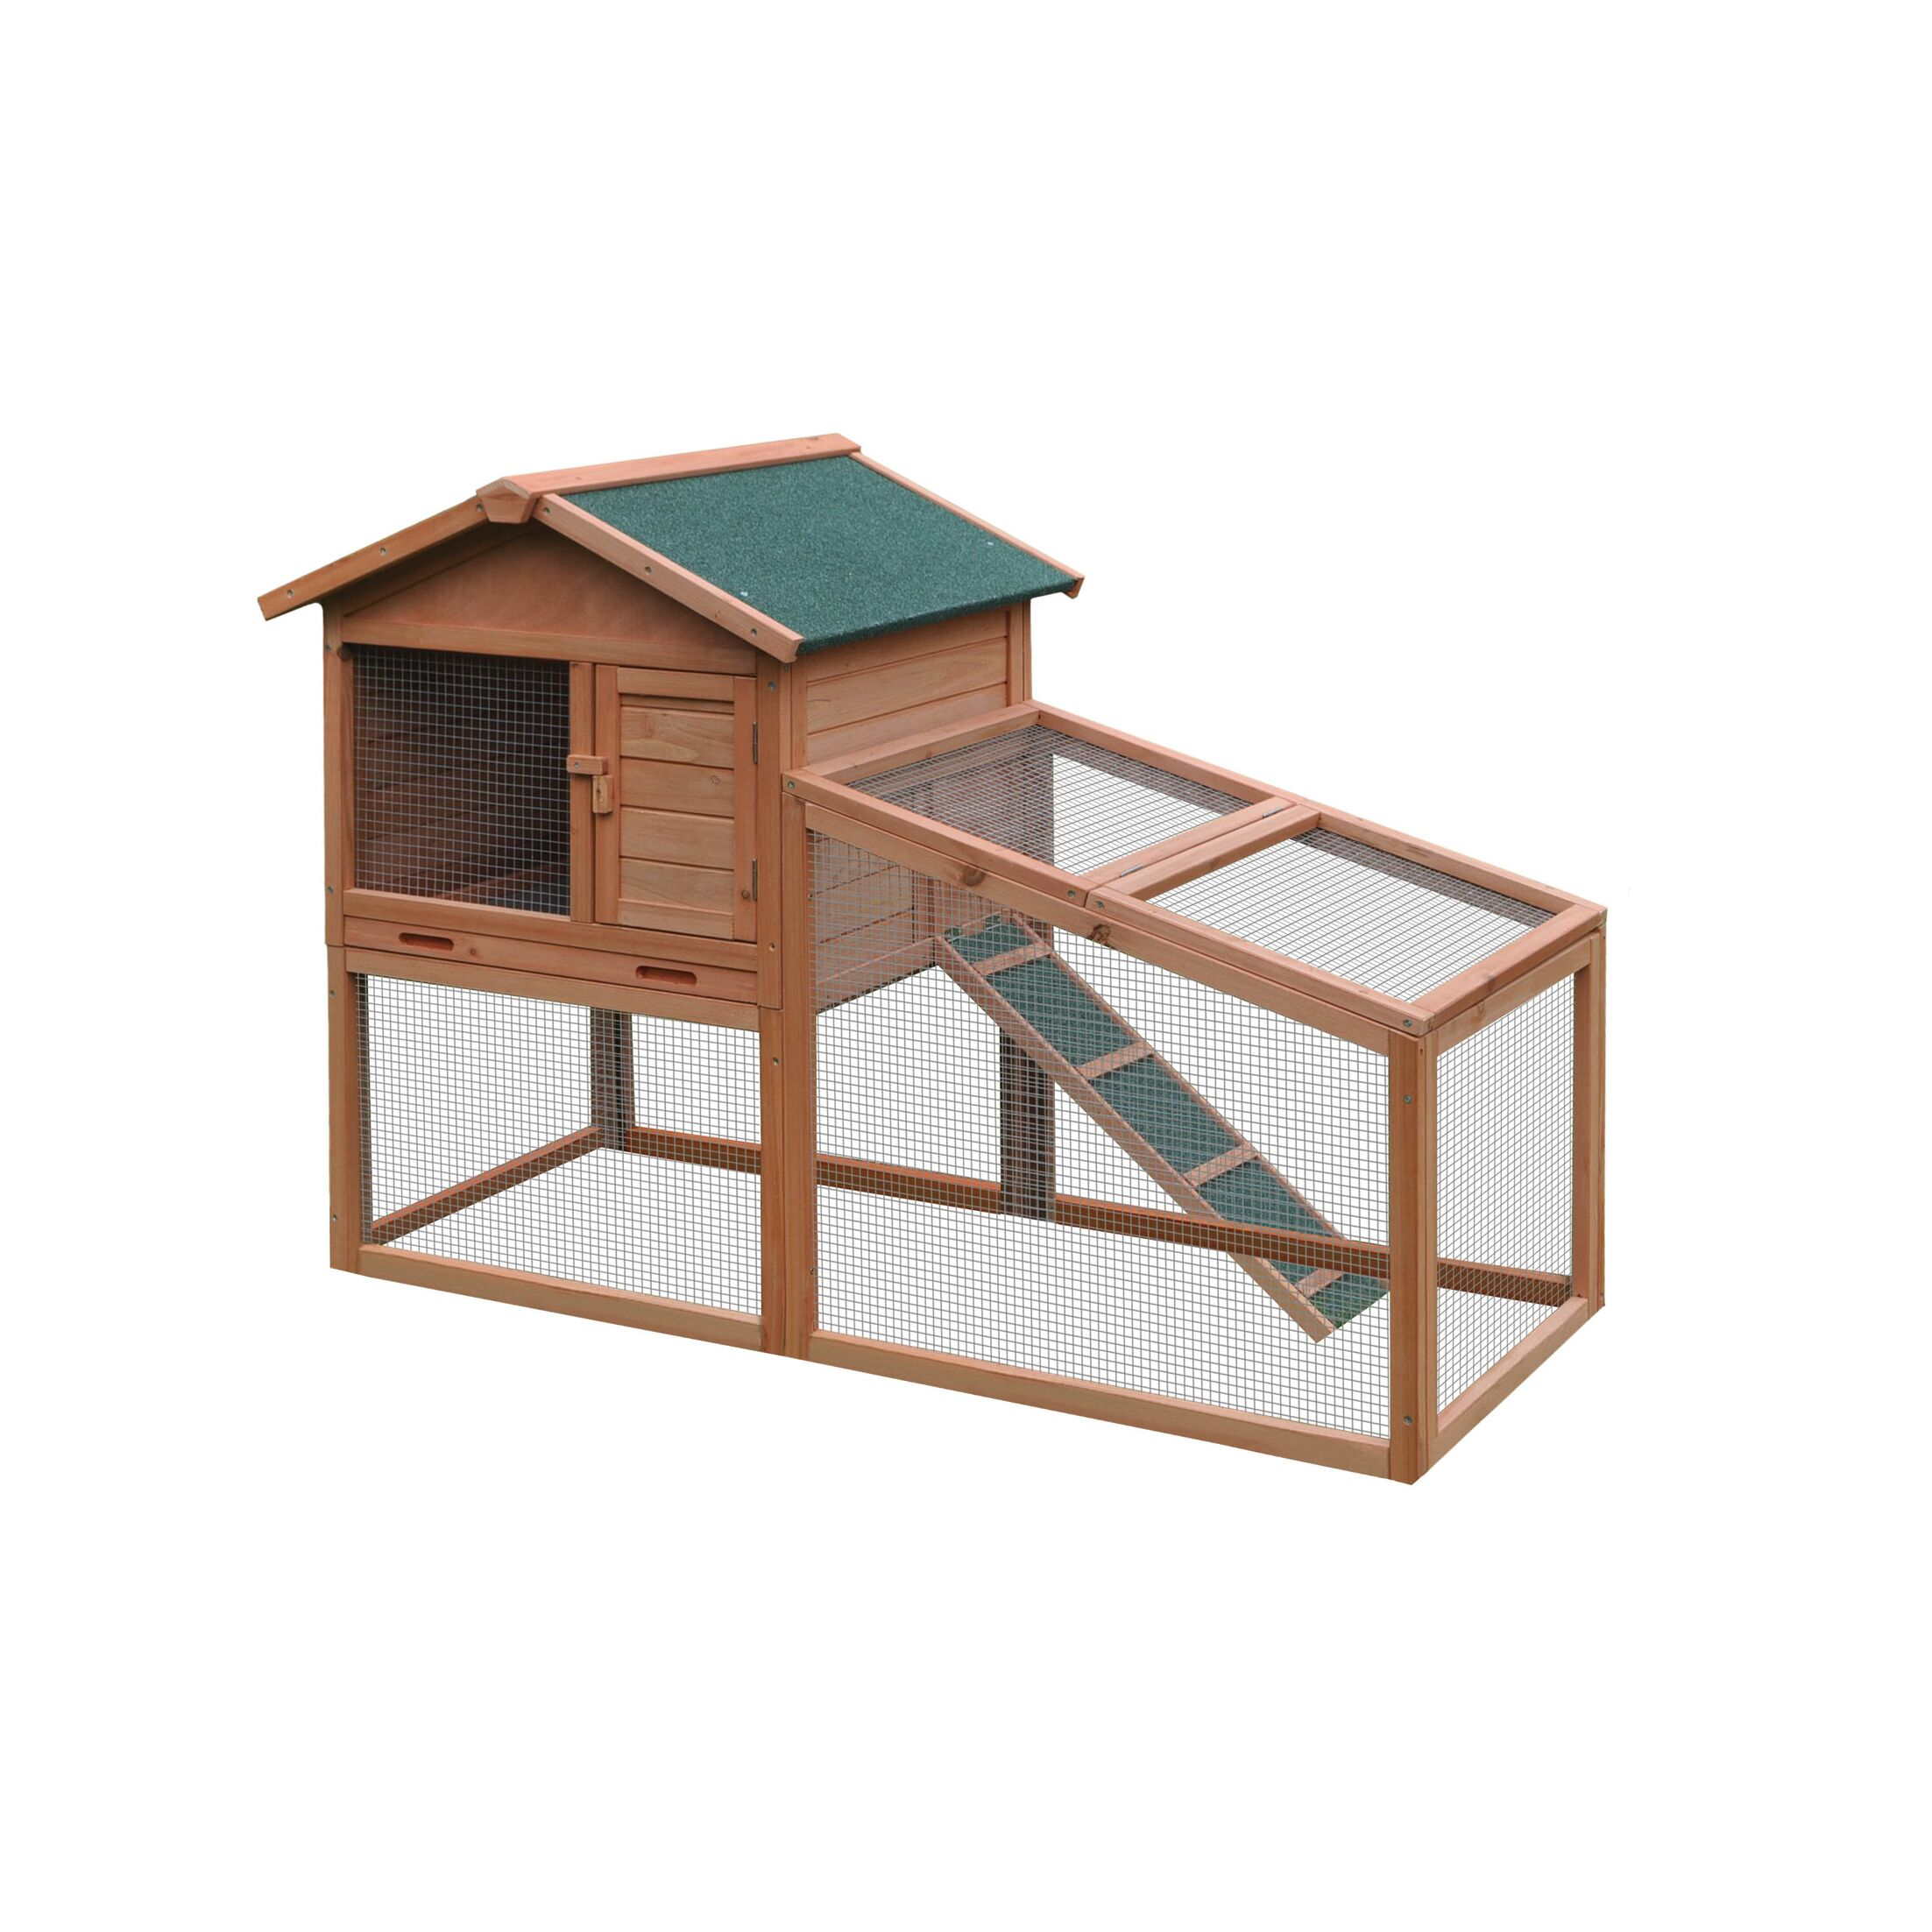 Dakota Wooden Pet House Chicken Coop with Chicken Run